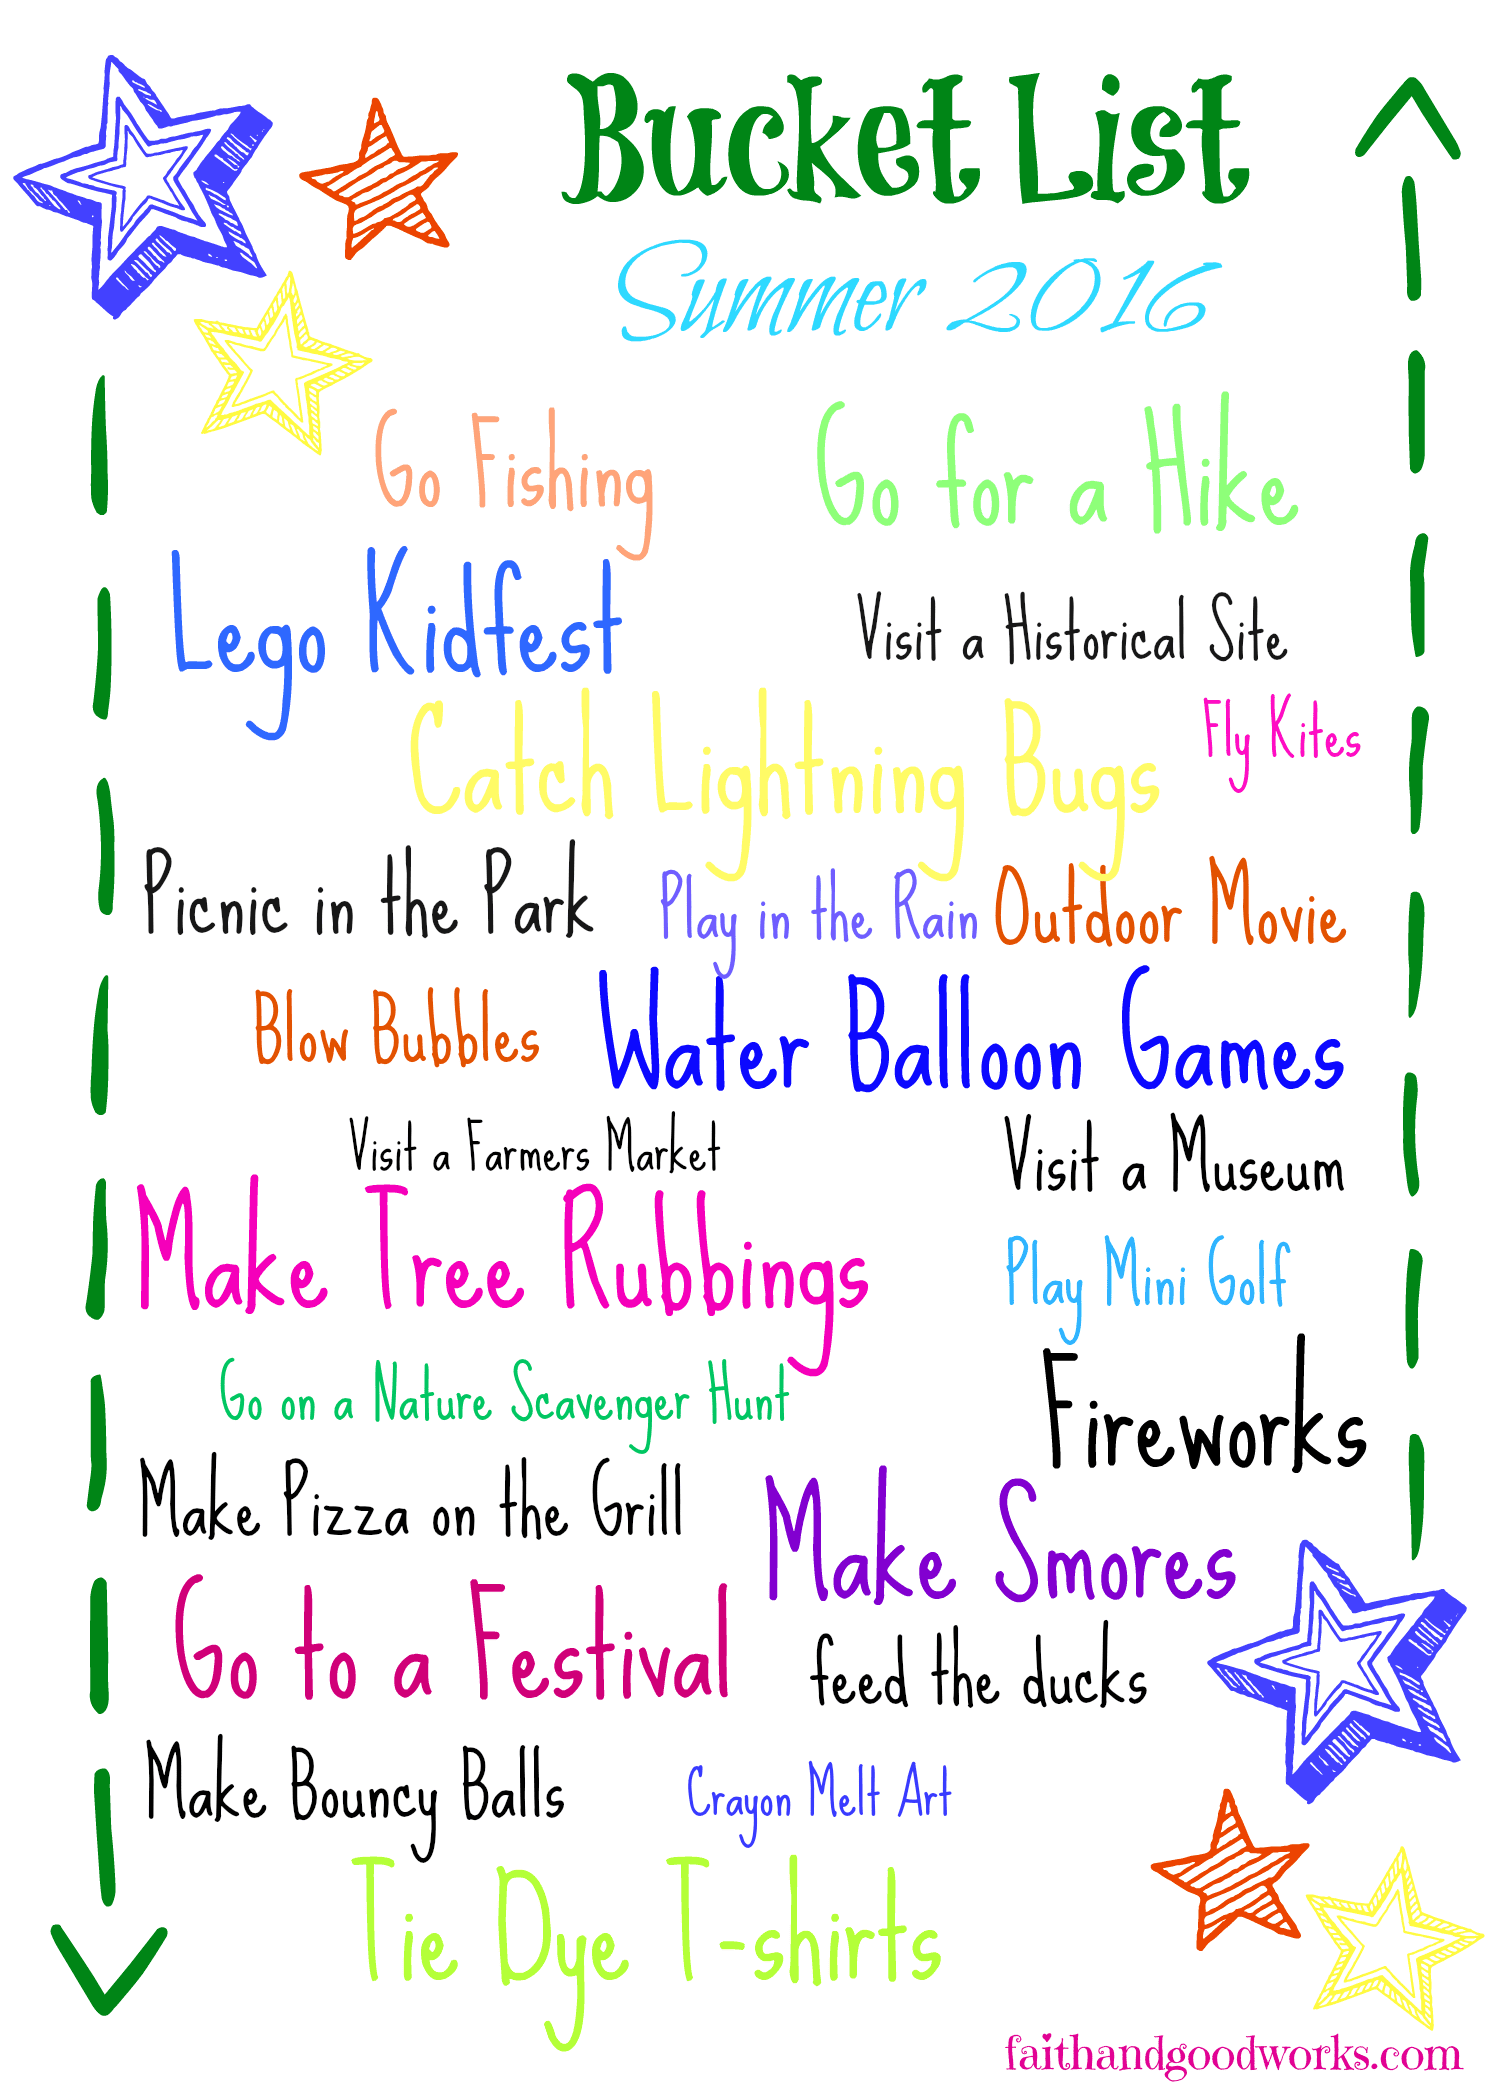 Summer 2016 Bucket List